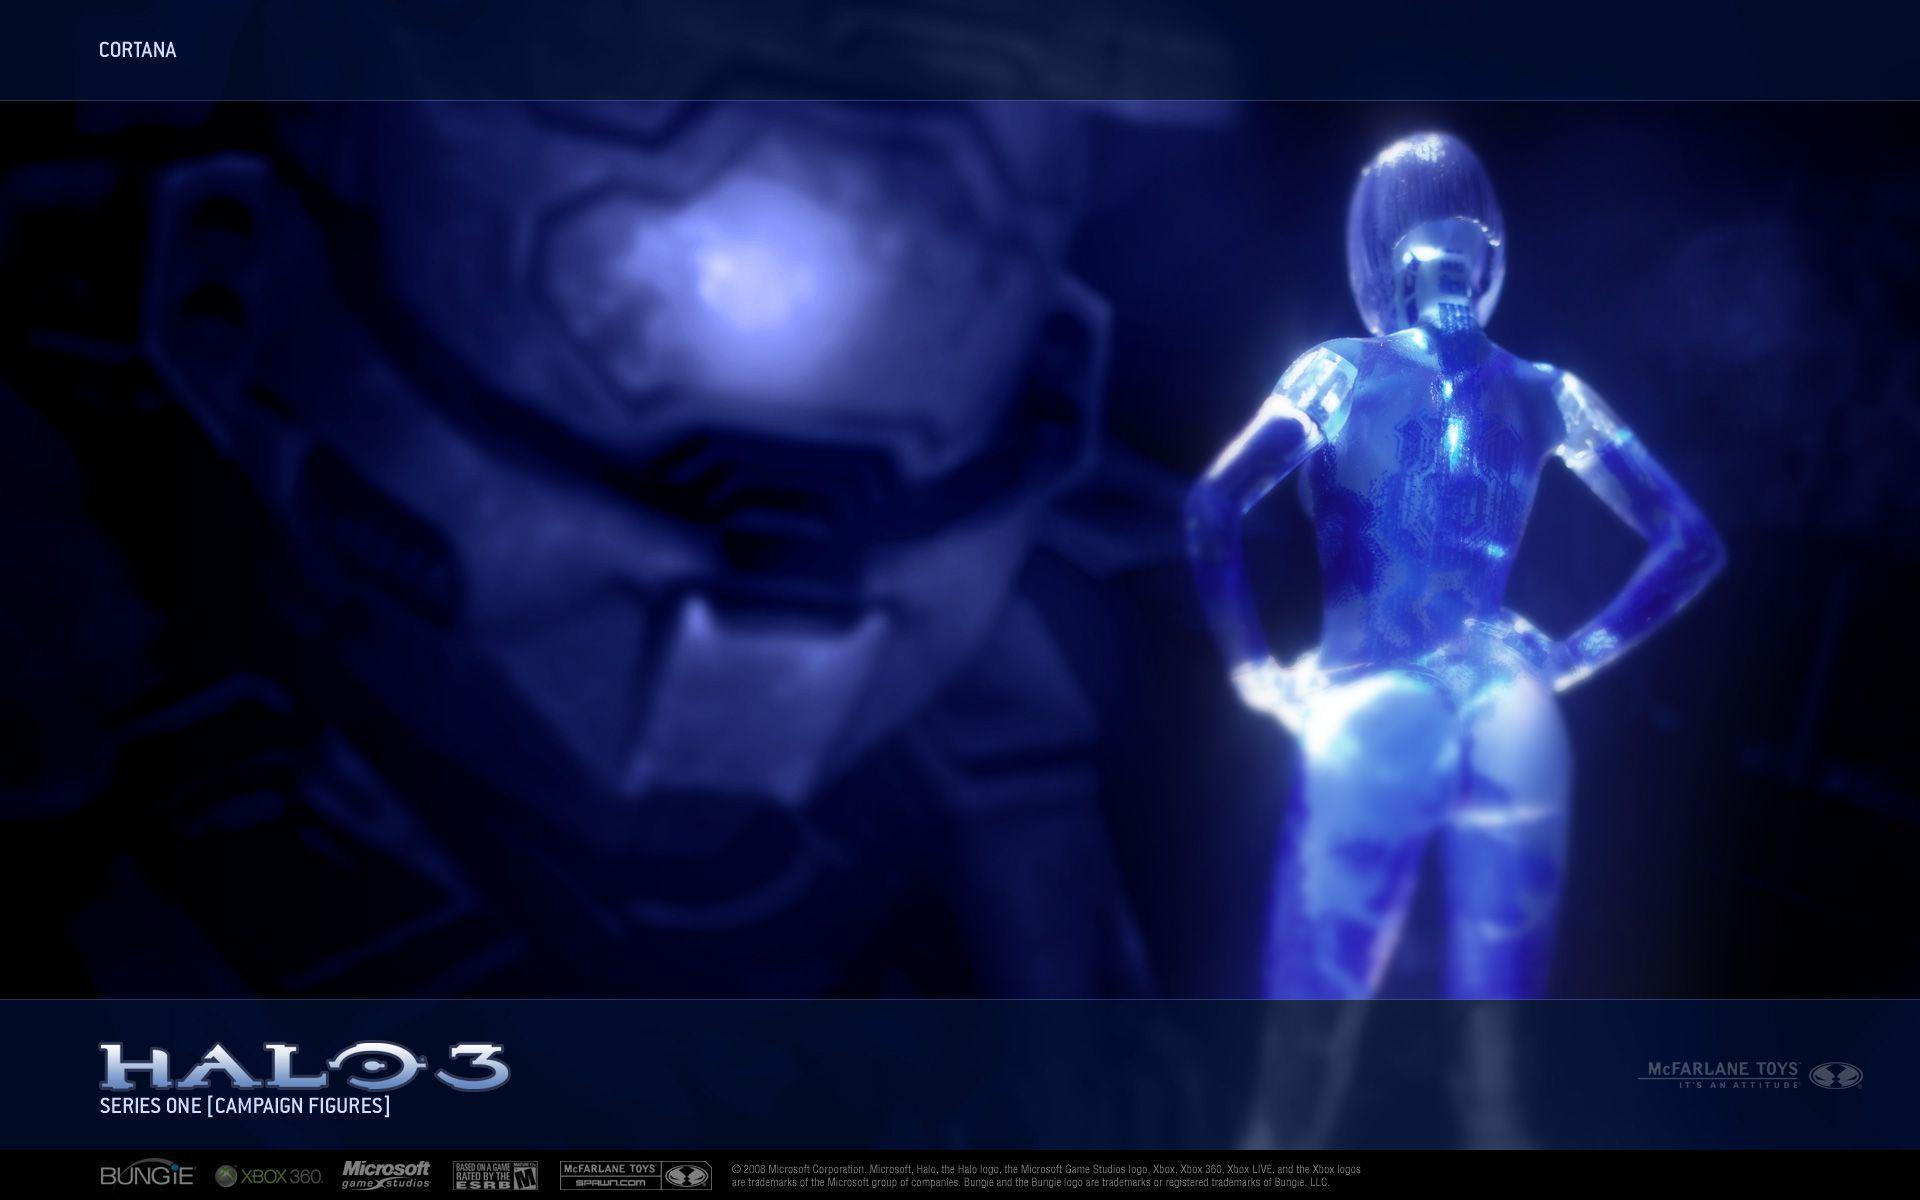 cortana wallpaper2 - photo #18